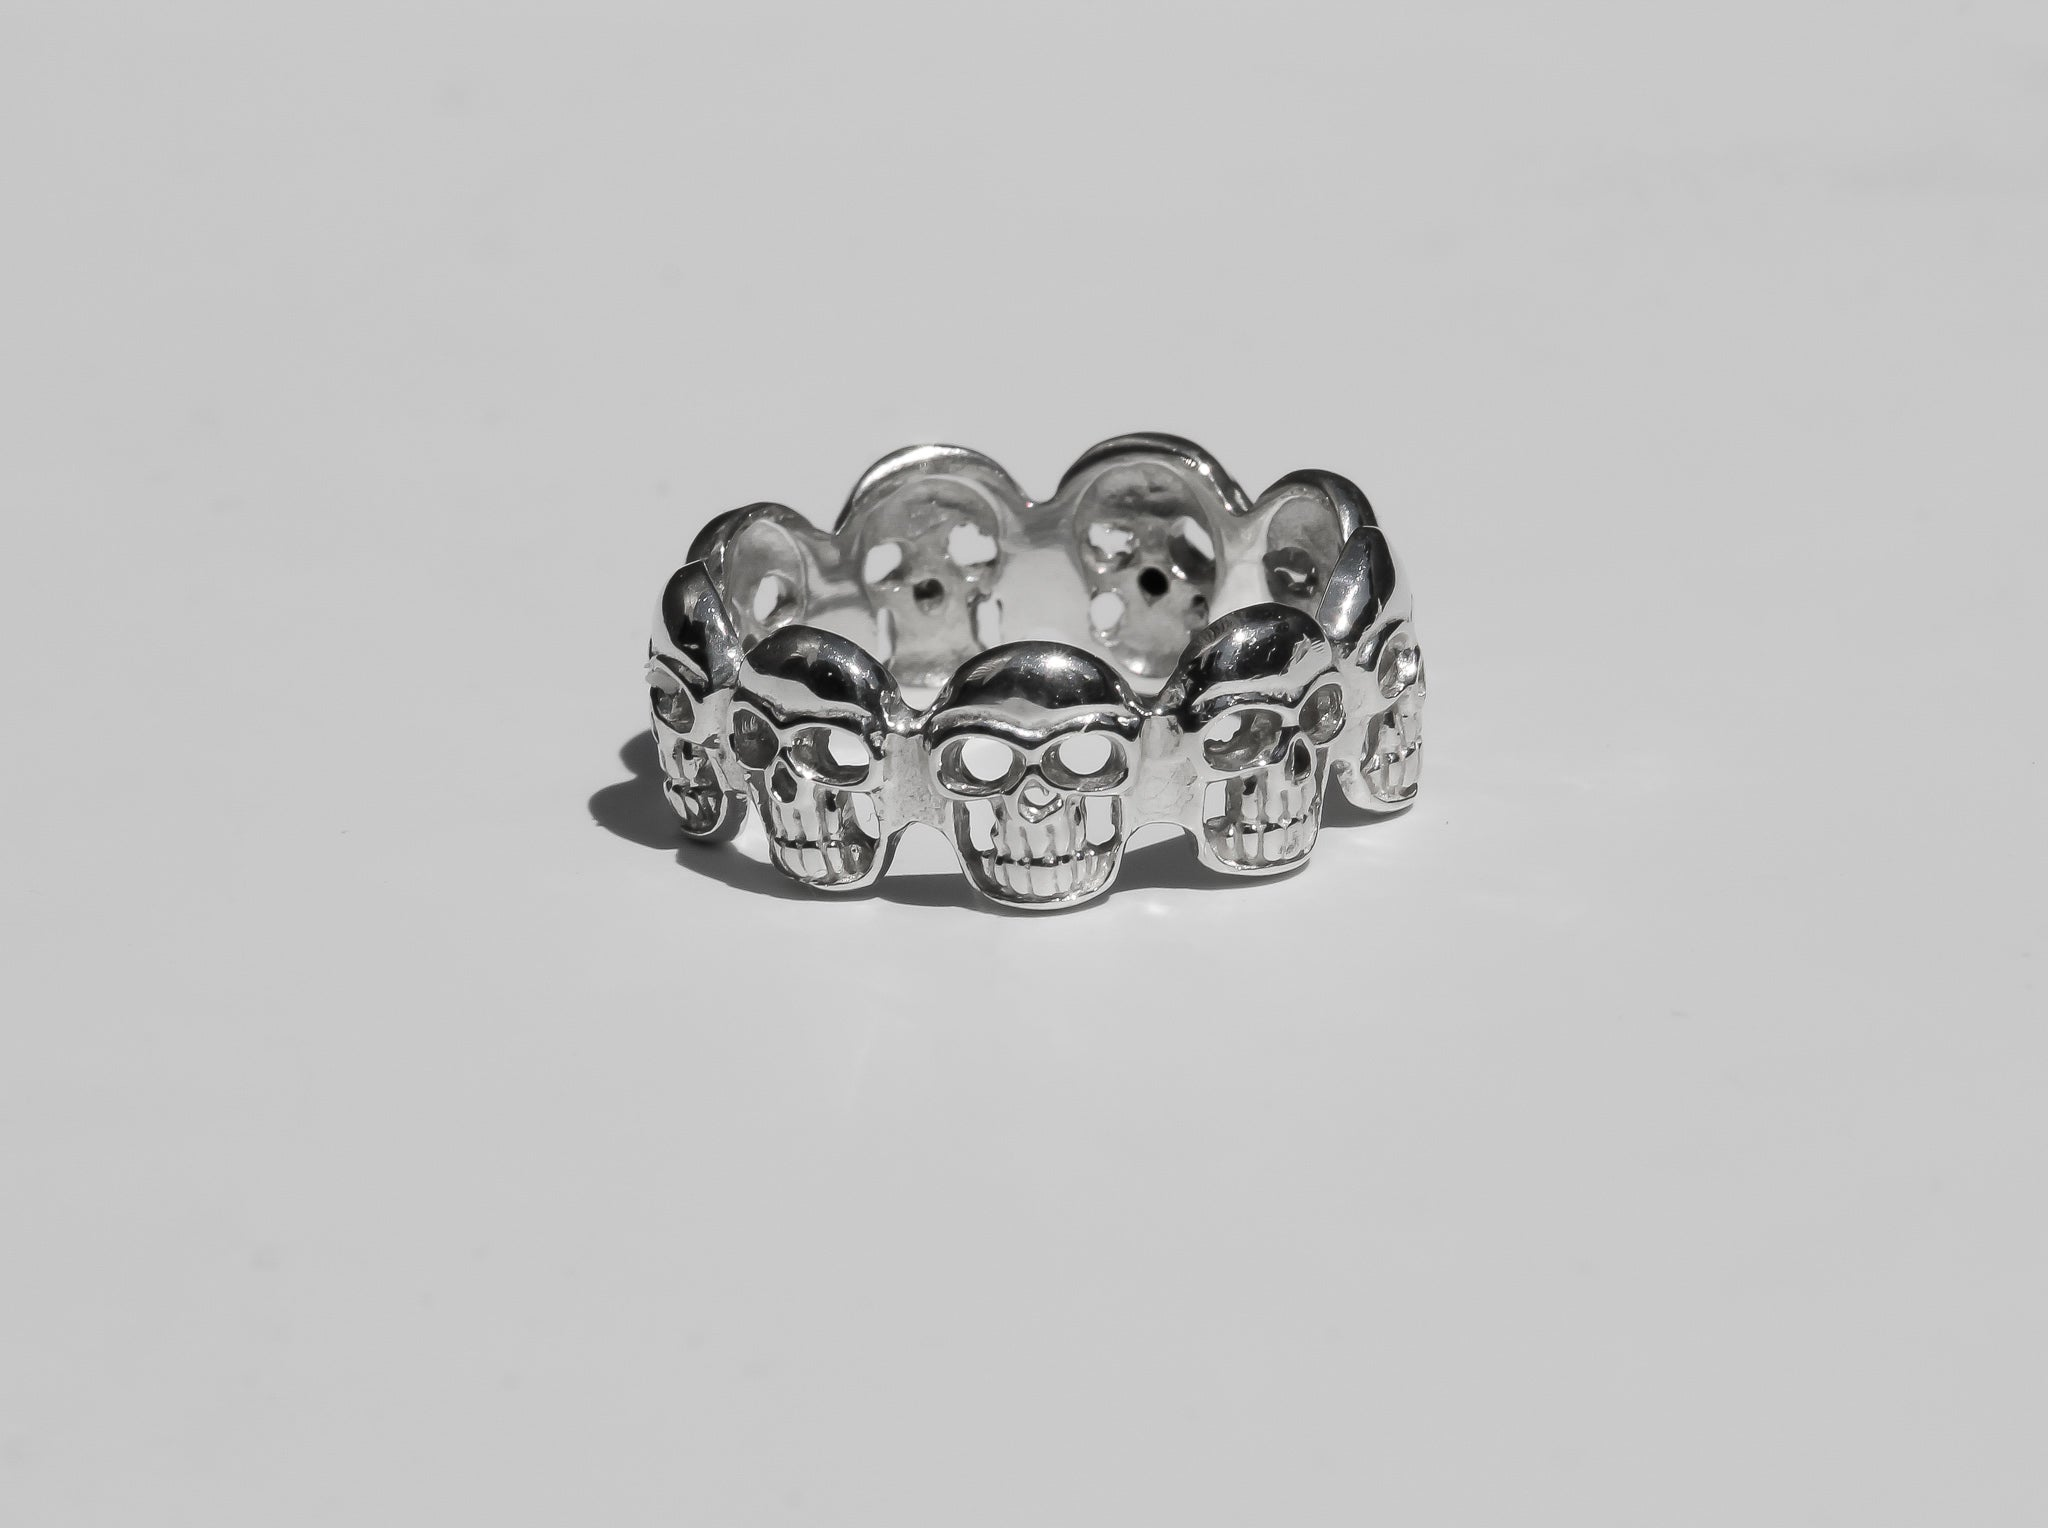 buy toronto mens silver ring, buy cheap silver ring toronto, buy cheap silver mens ring new york, buy cheap silver mens skull ring, solid silver skull ring mens